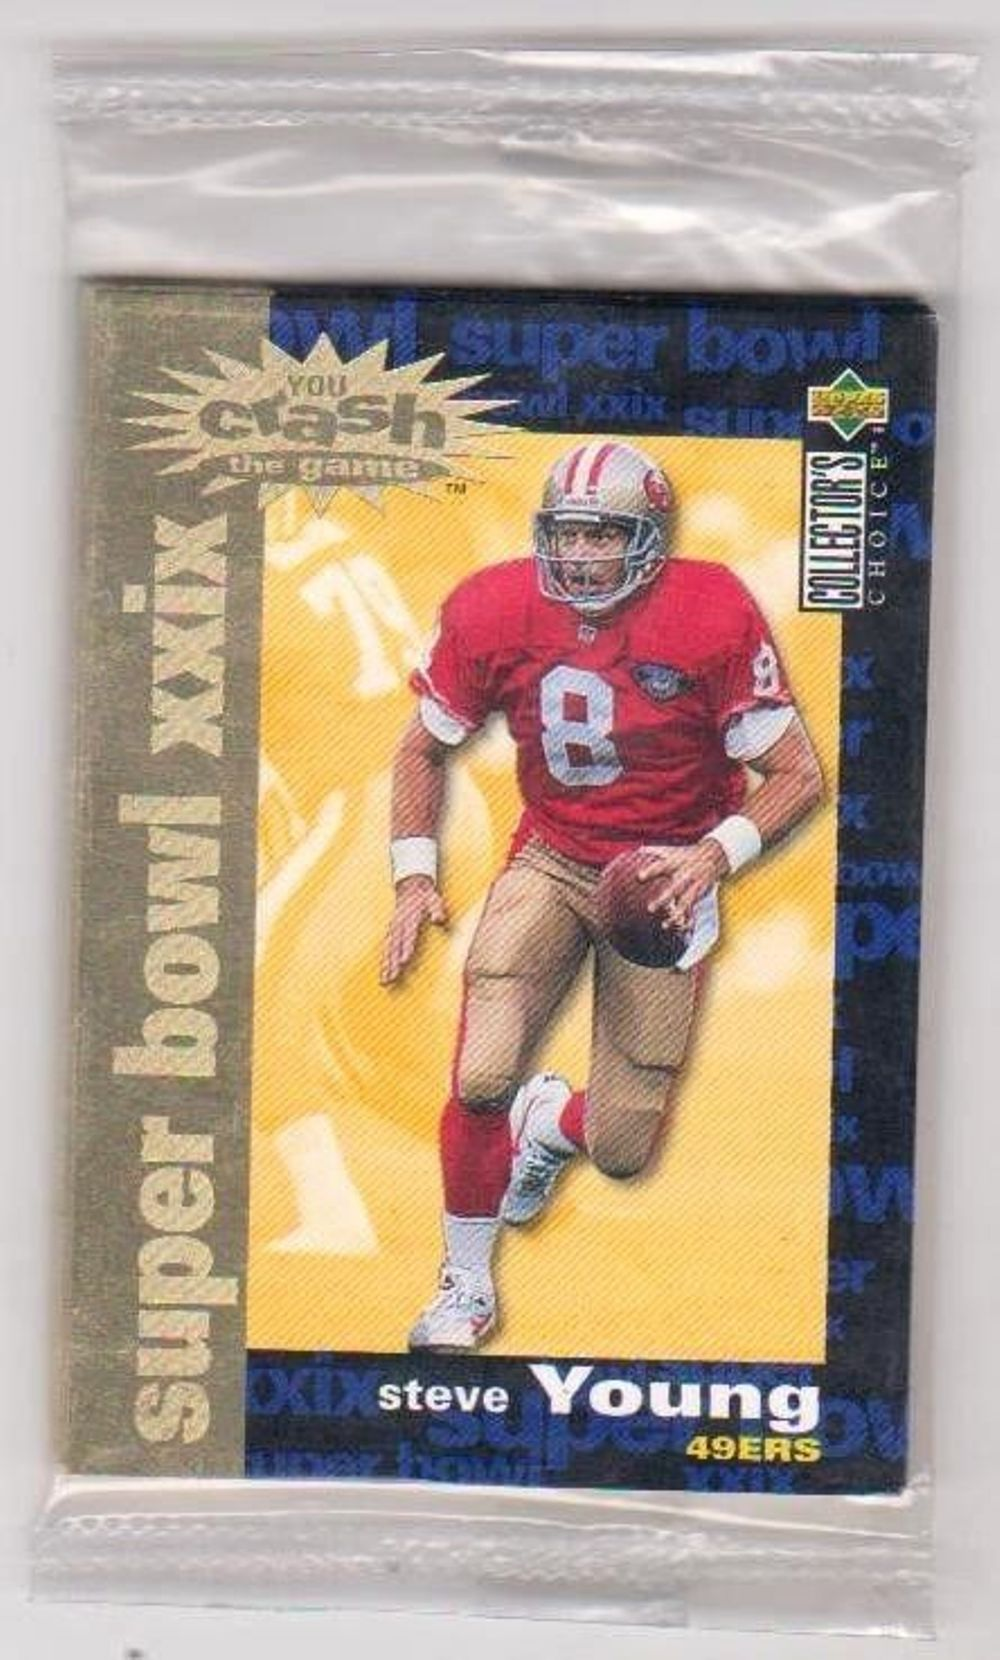 1995 Upper Deck Collector's Choice Super Bowl XXIX Crash The Game Sealed Set